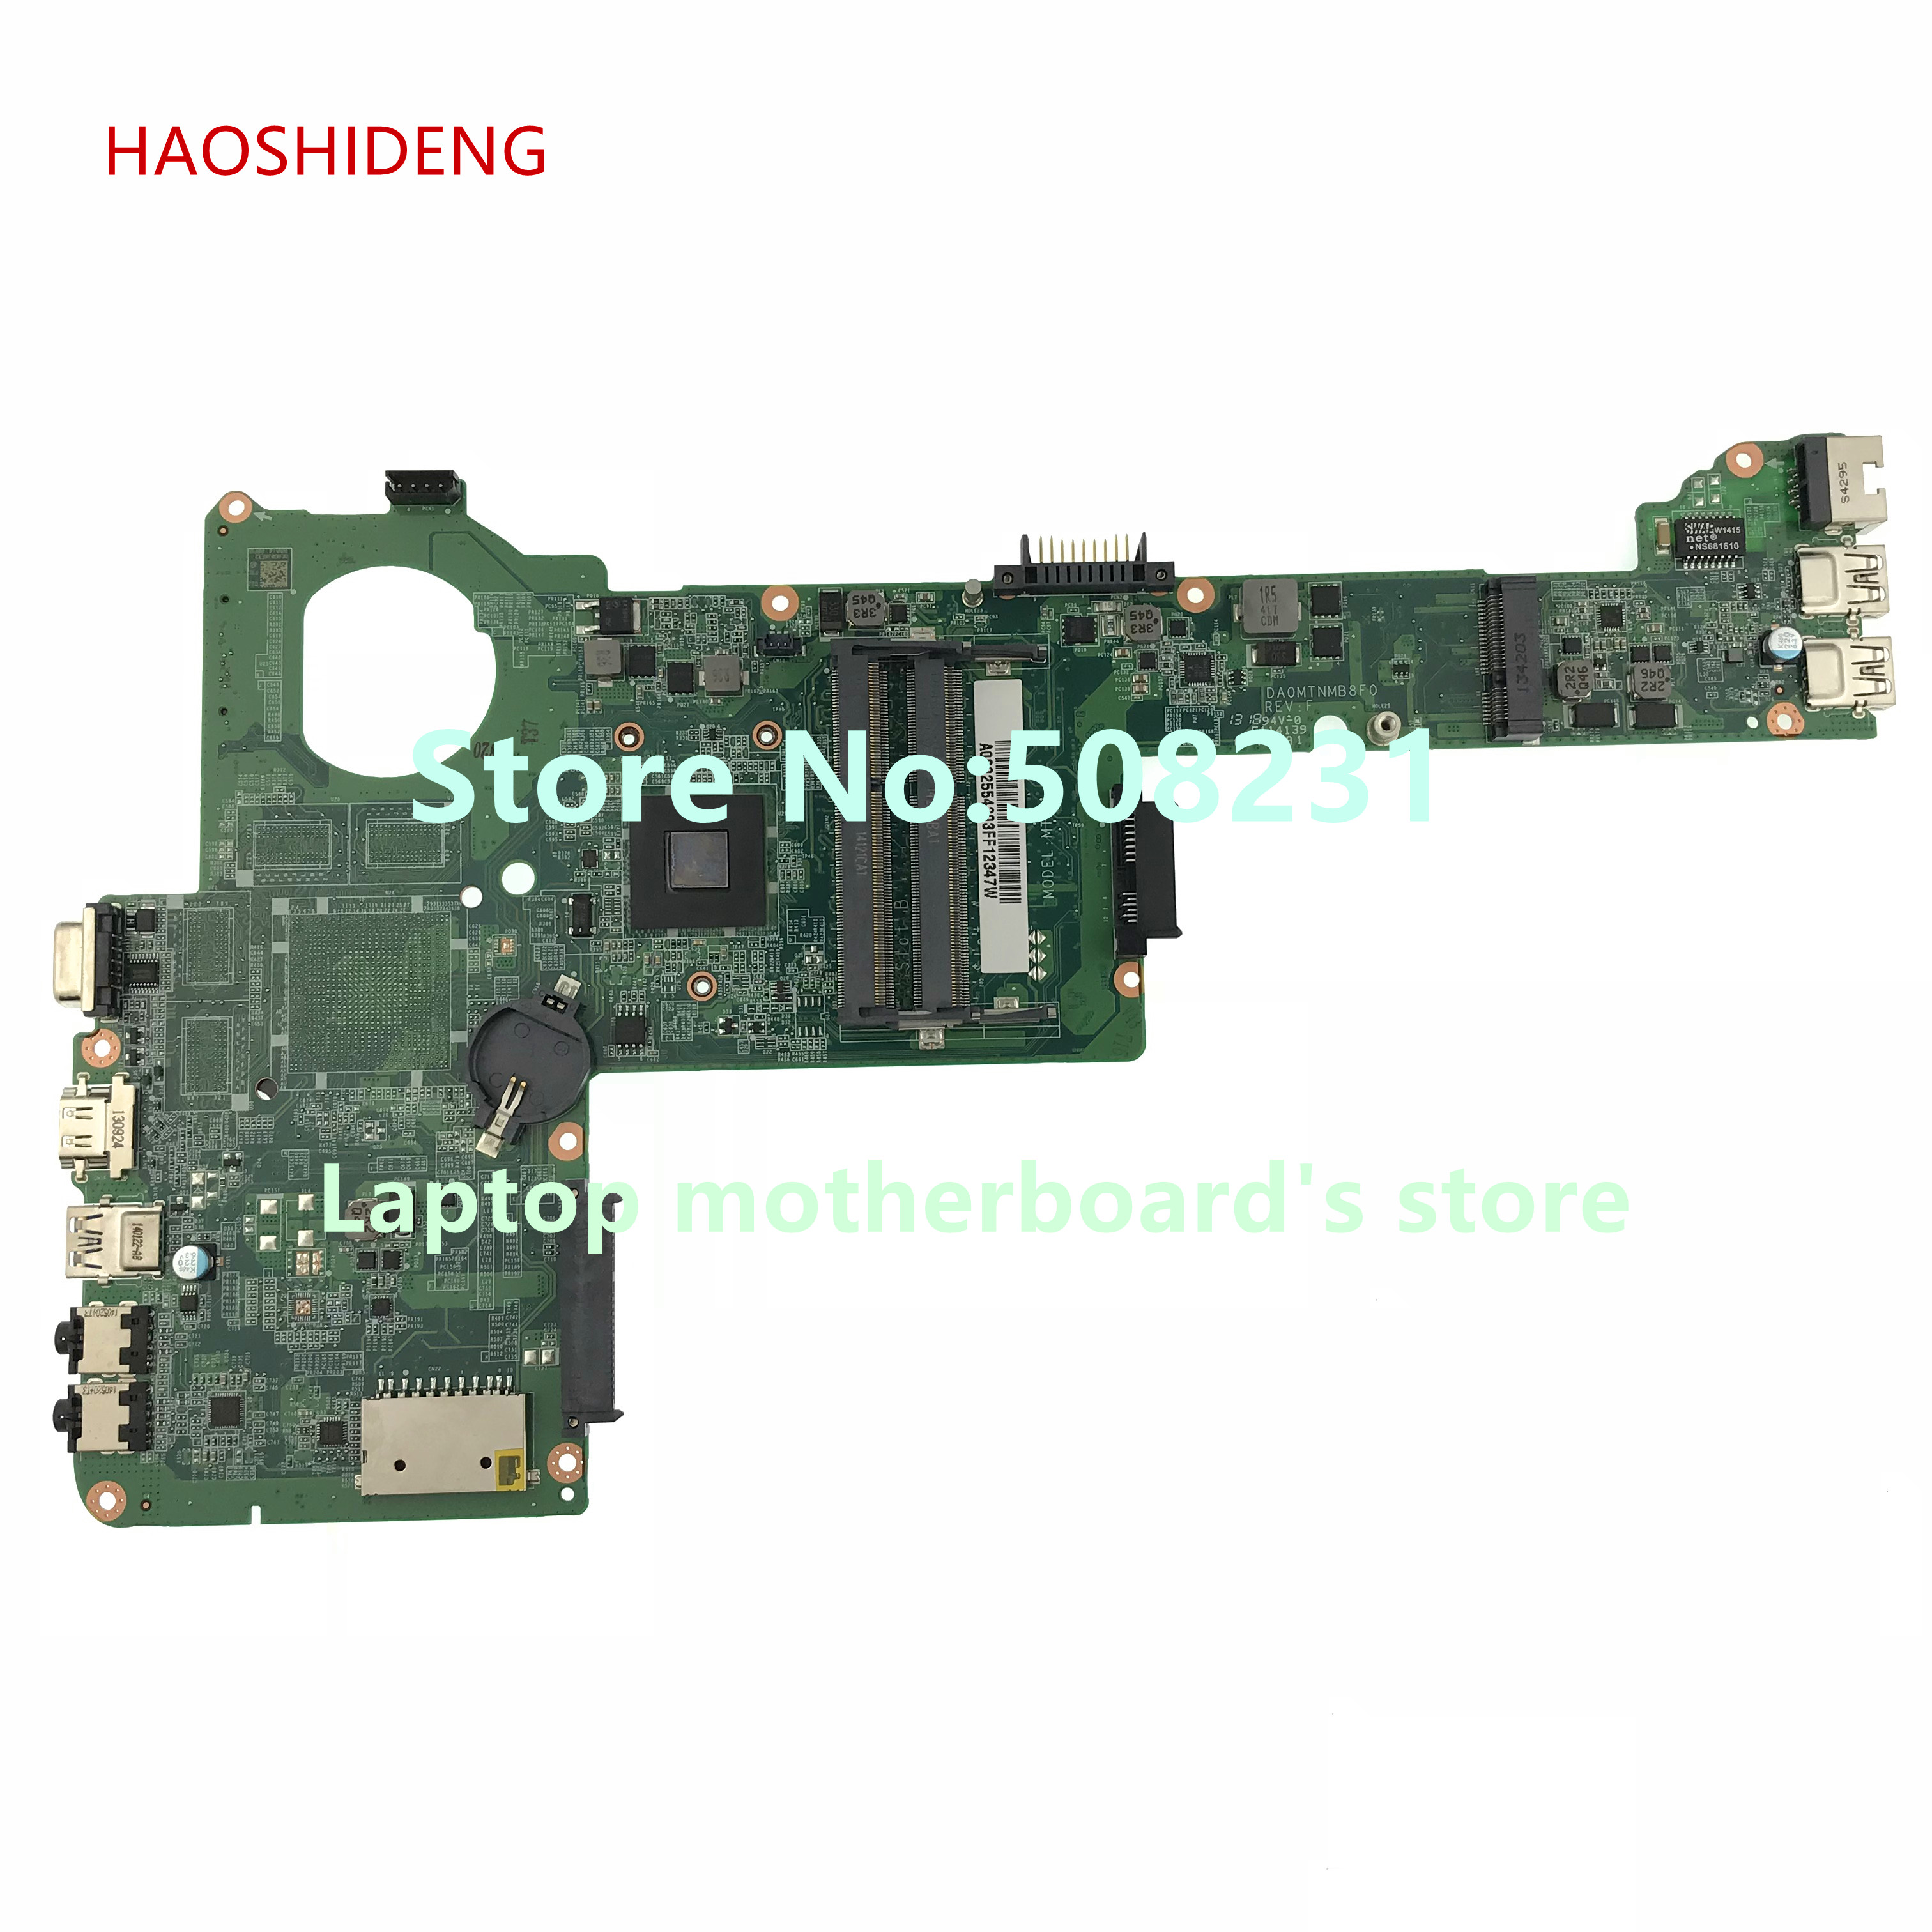 HAOSHIDENG A000255420 DA0MTNMB8F0 For toshiba satellite C40D C45D C40D-A laptop motherboard All functions fully Tested ирина галинская культурология дайджест 1 2014